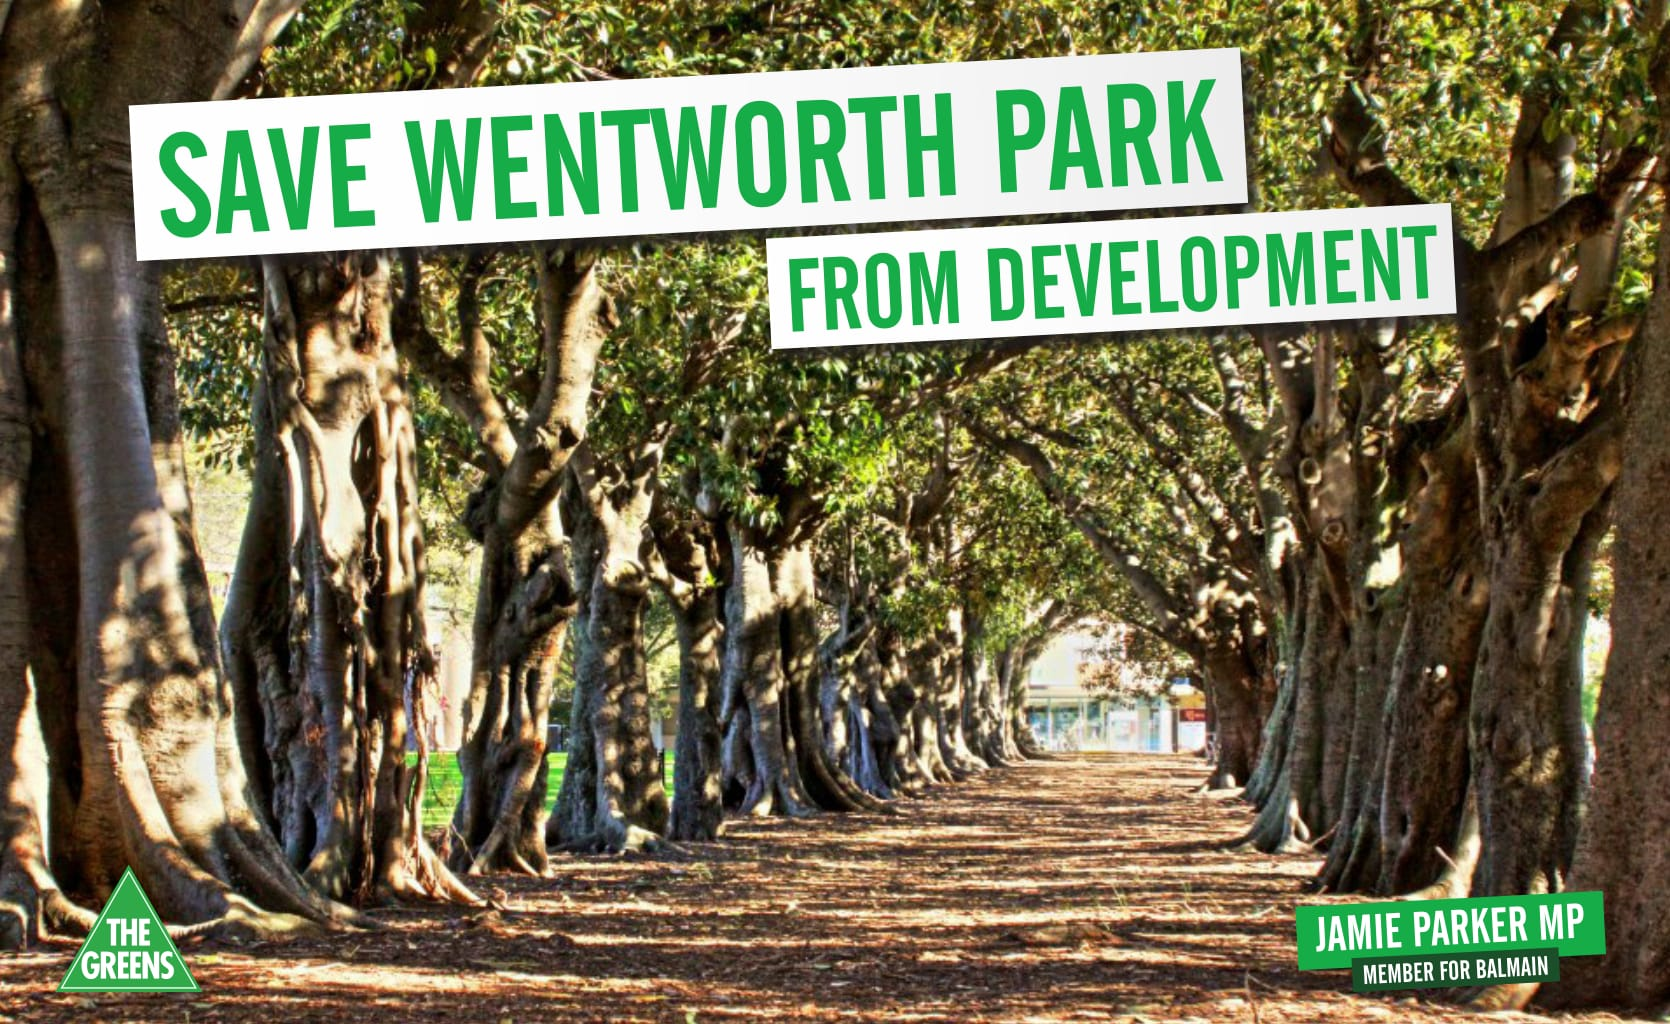 Save Wentworth Park - Jamie Parker MP